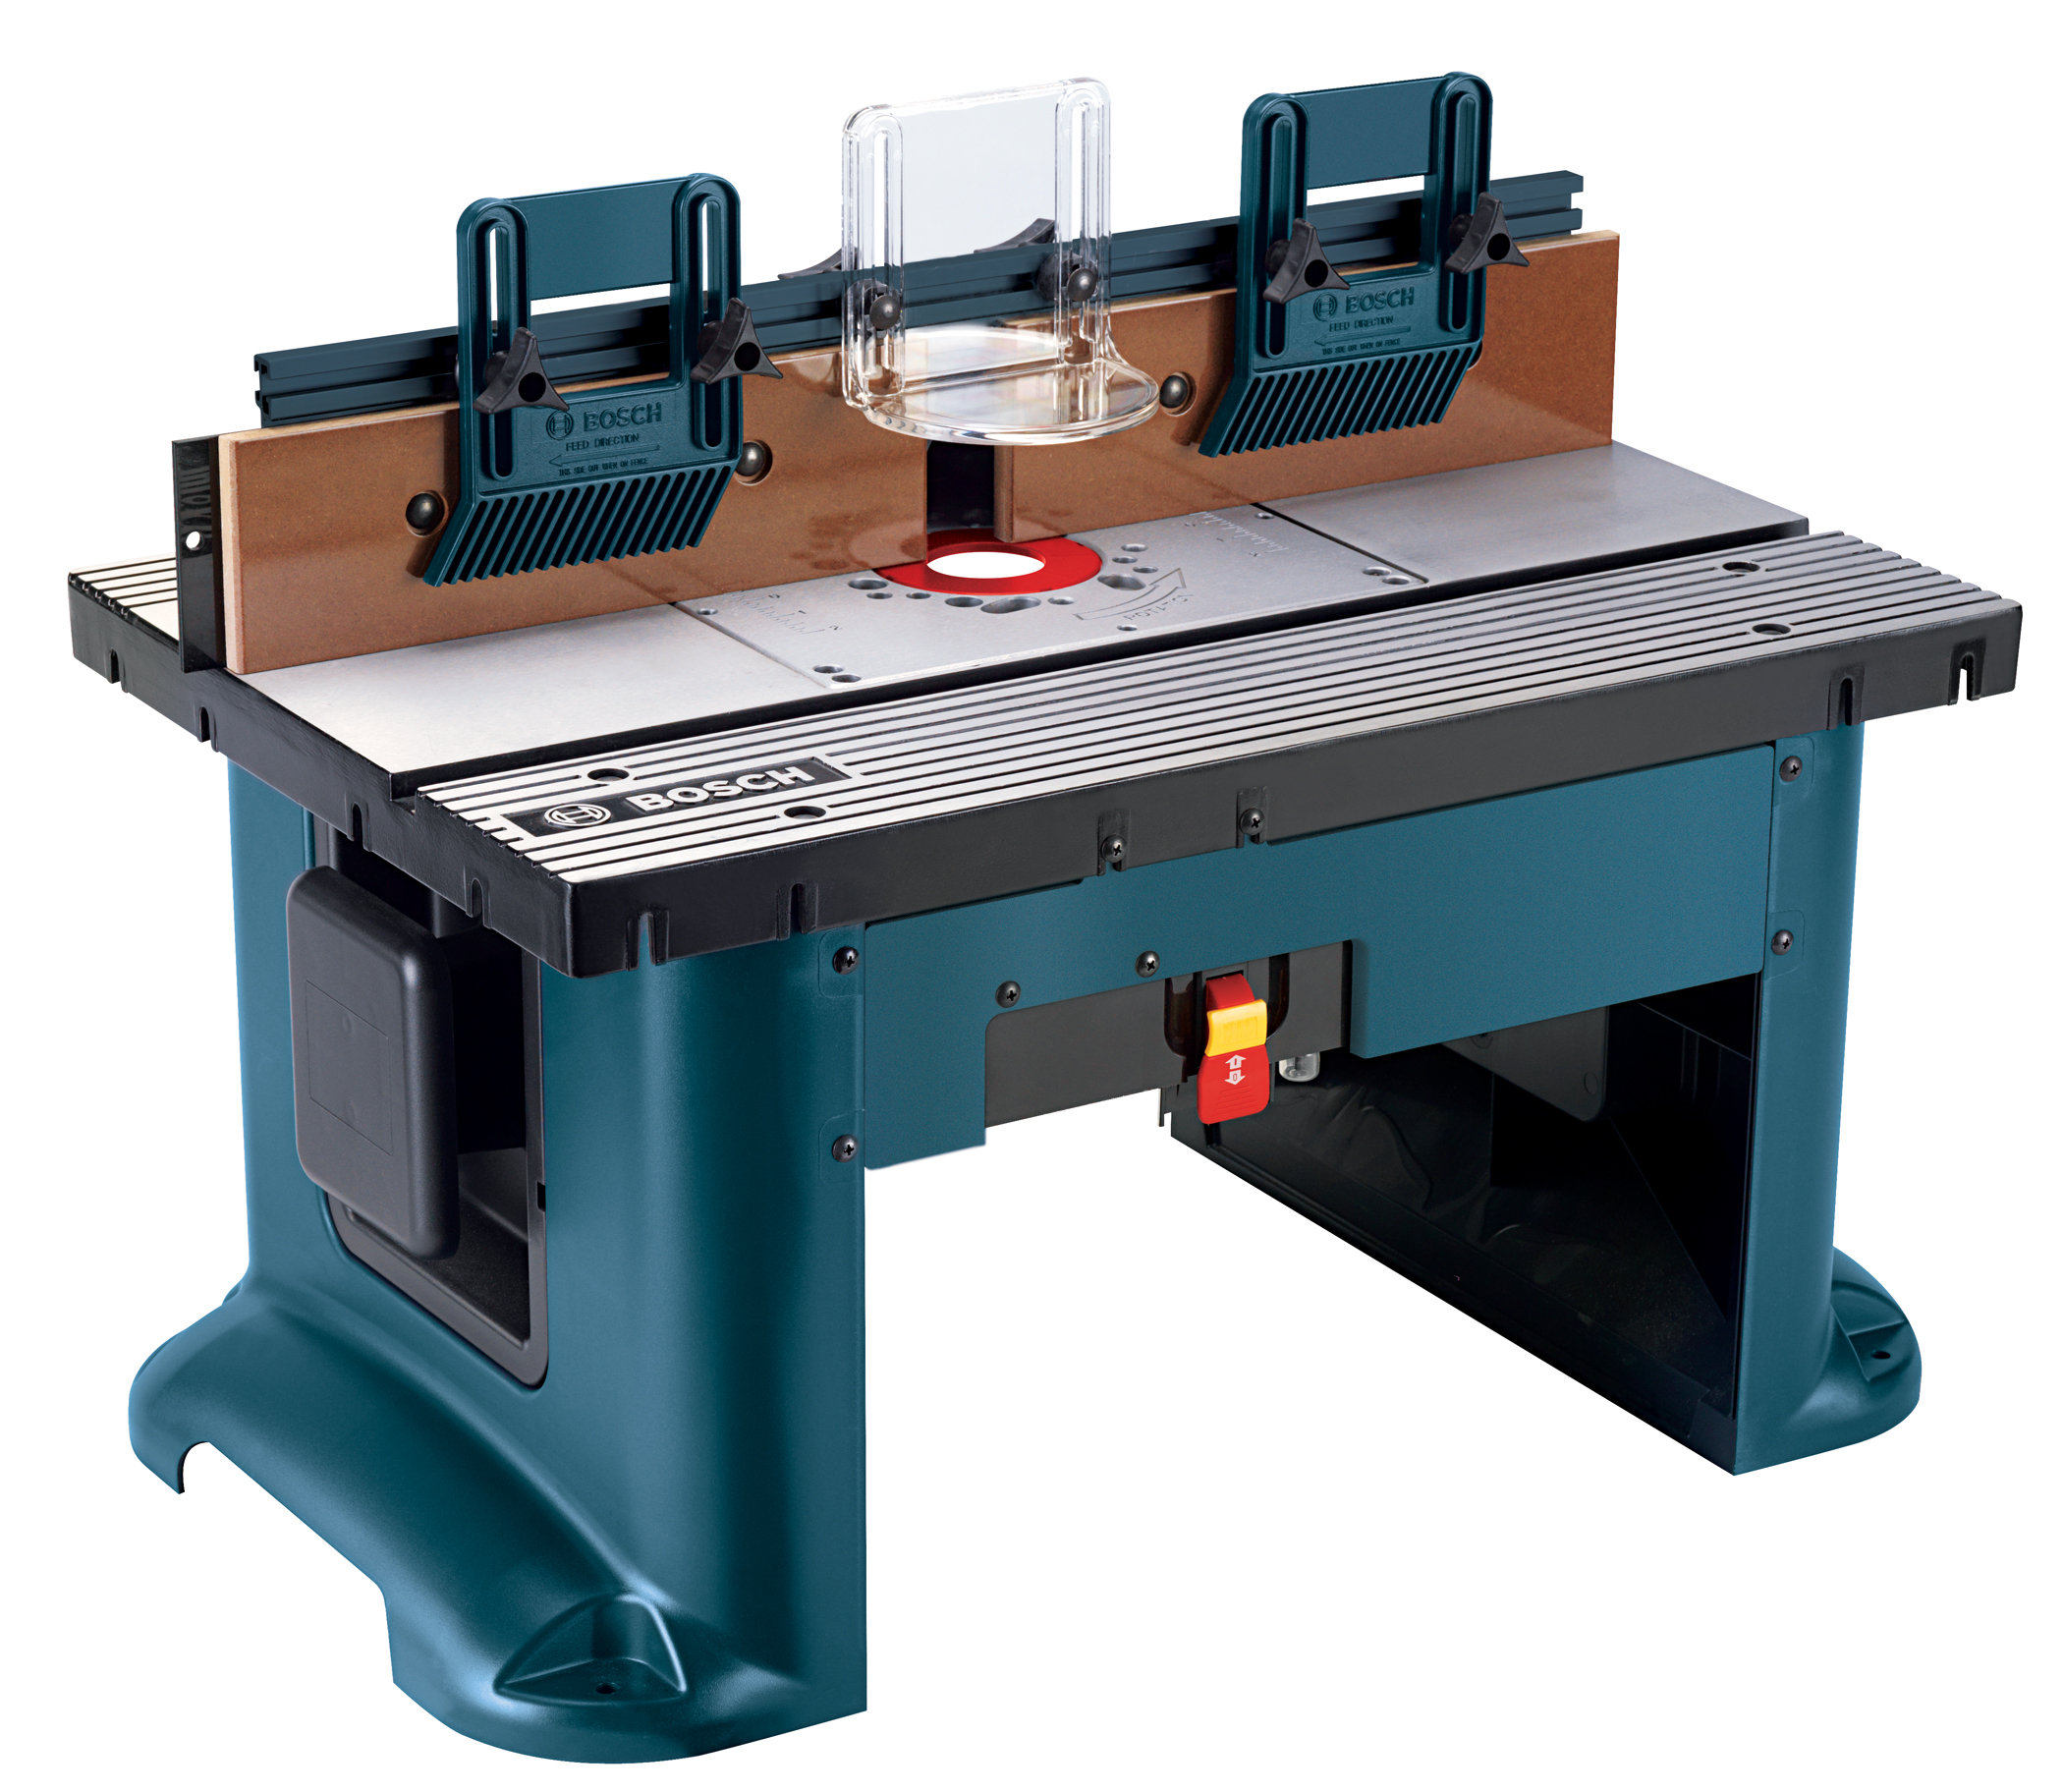 Bosch RA1181 Benchtop Router Table - - Amazon.com